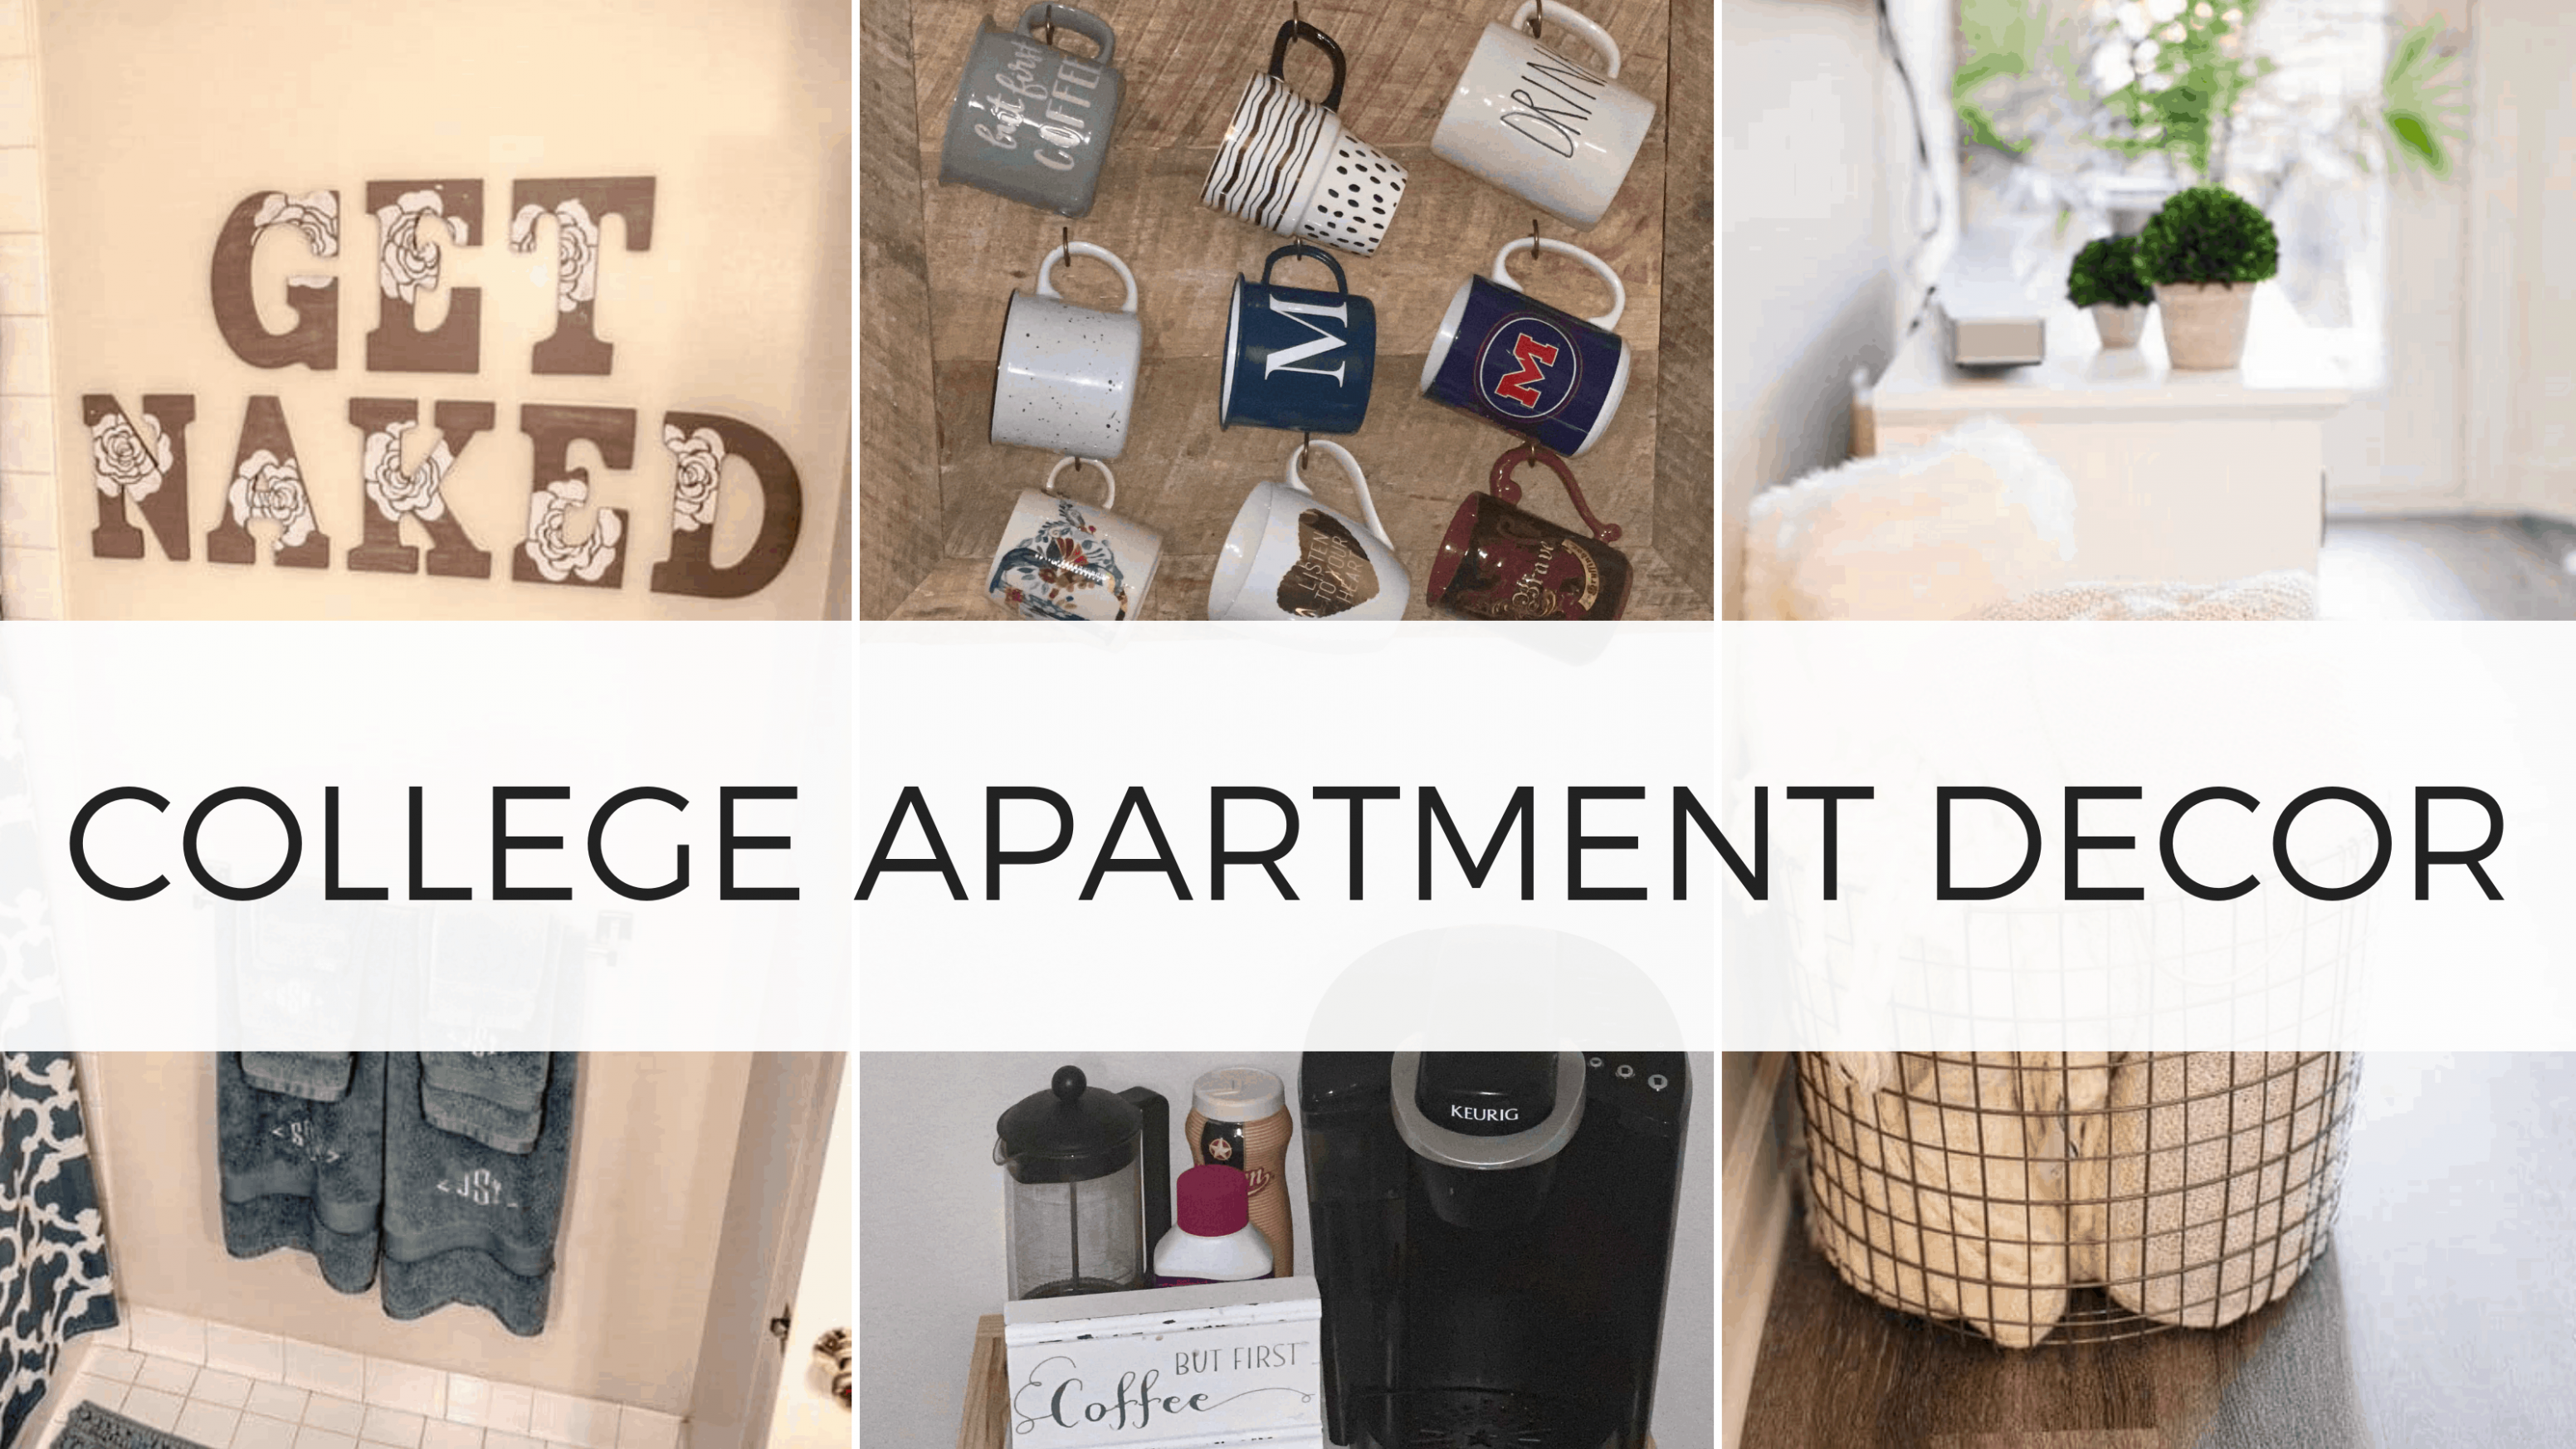 11 Best College Apartment Decor Ideas You Need To Copy - By Sophia Lee - wall decoration ideas college apartment